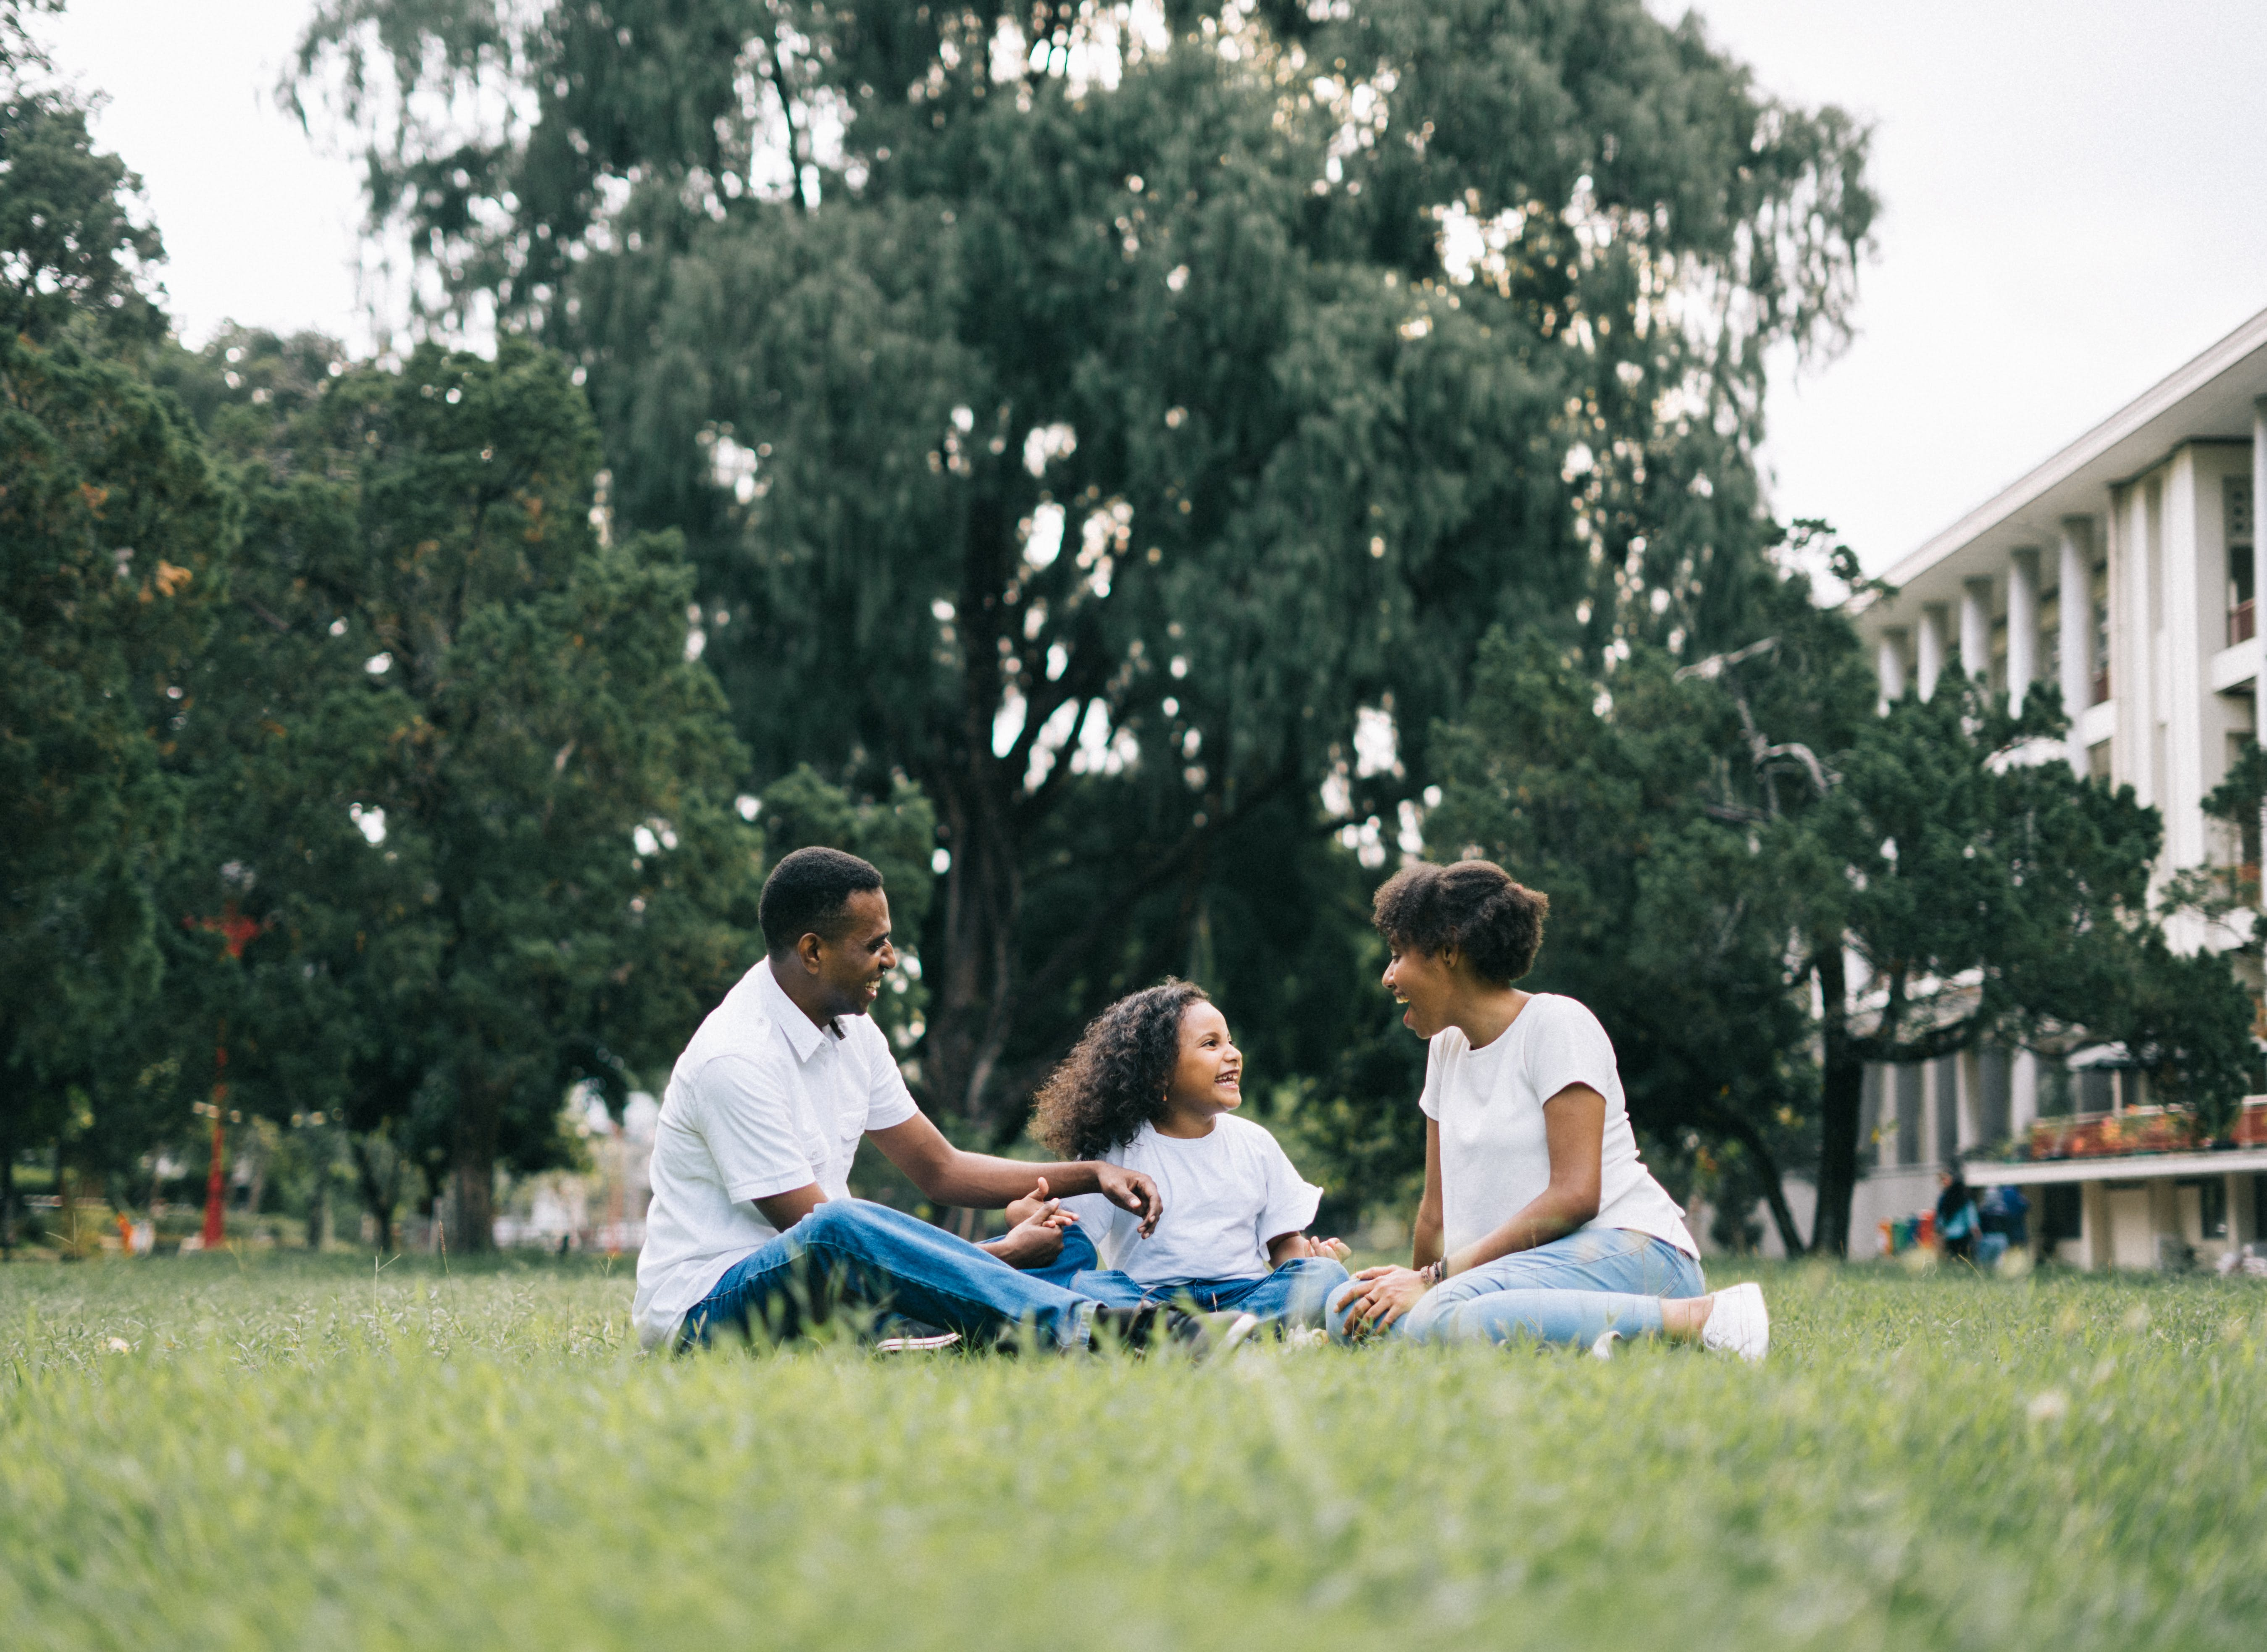 Family Sitting on Grass Near Building